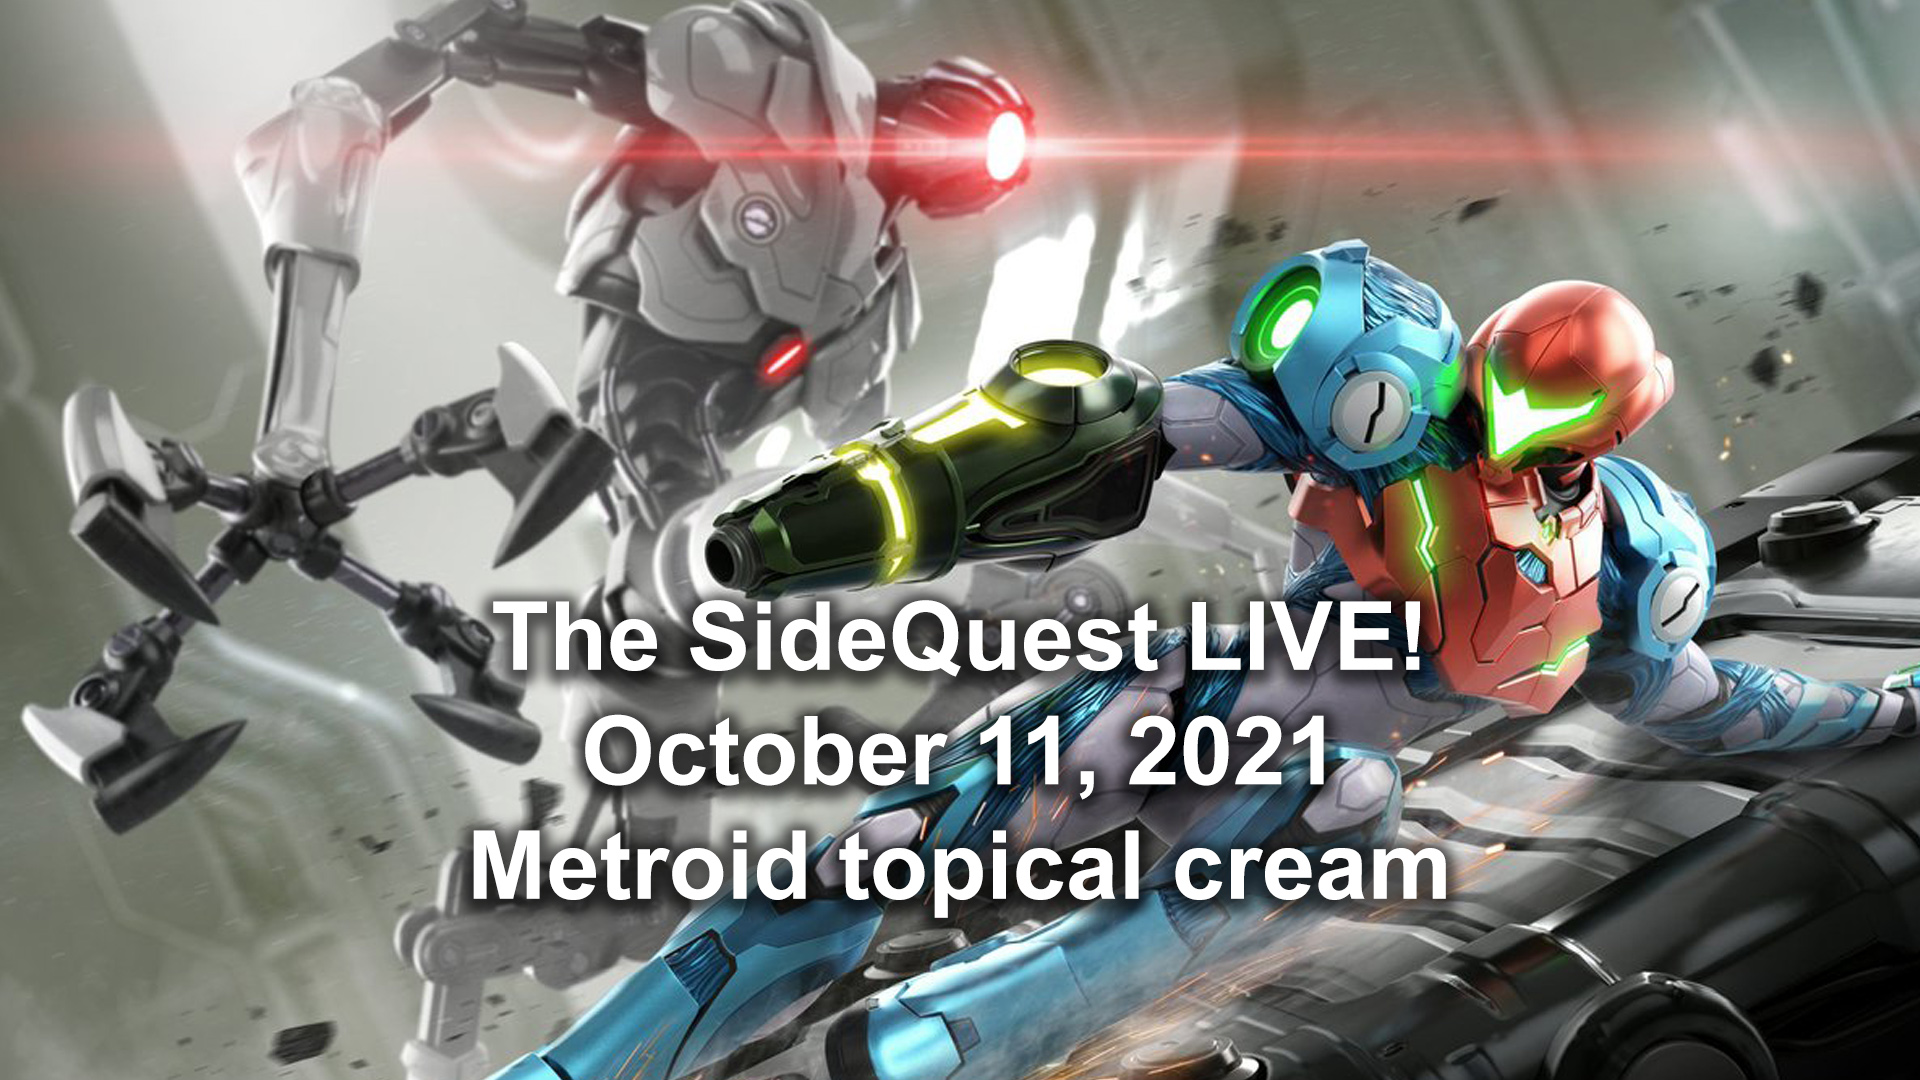 The SideQuest LIVE! October 11, 2021: Metroid topical cream